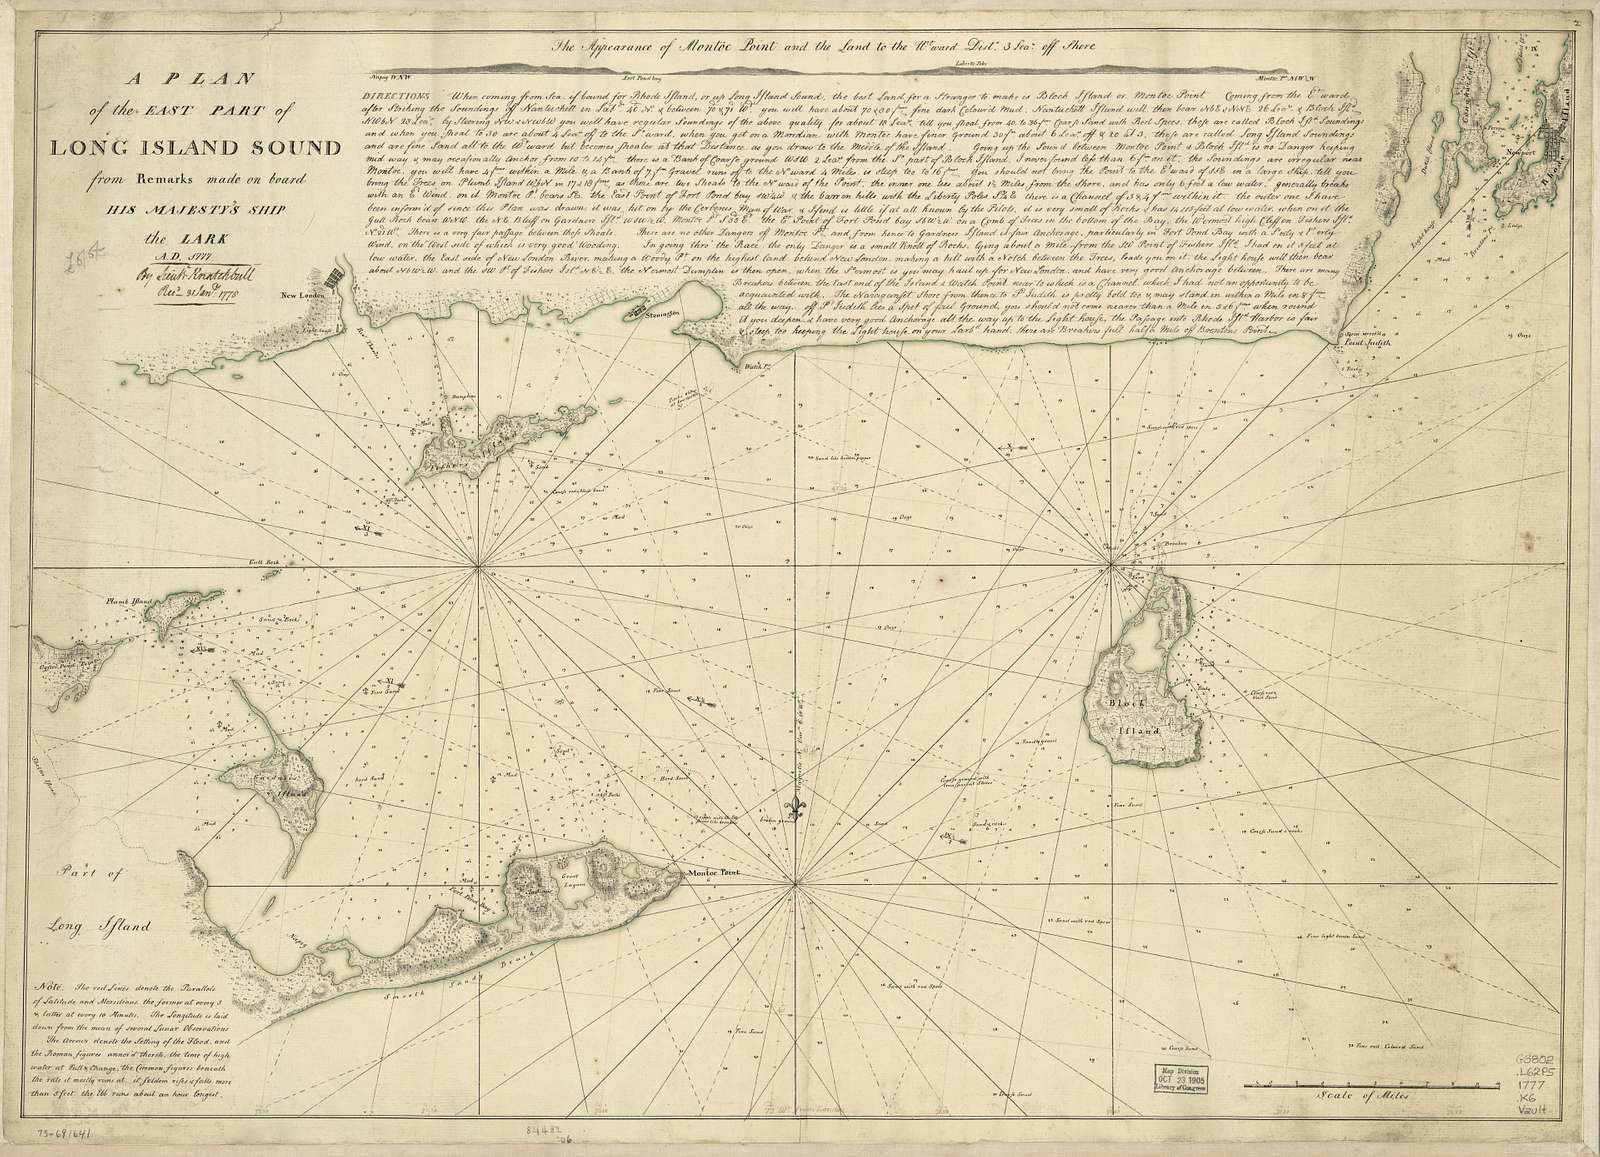 A plan of the east part of Long Island Sound from remarks made on board His Majesty's ship the Lark, A.D. 1777.